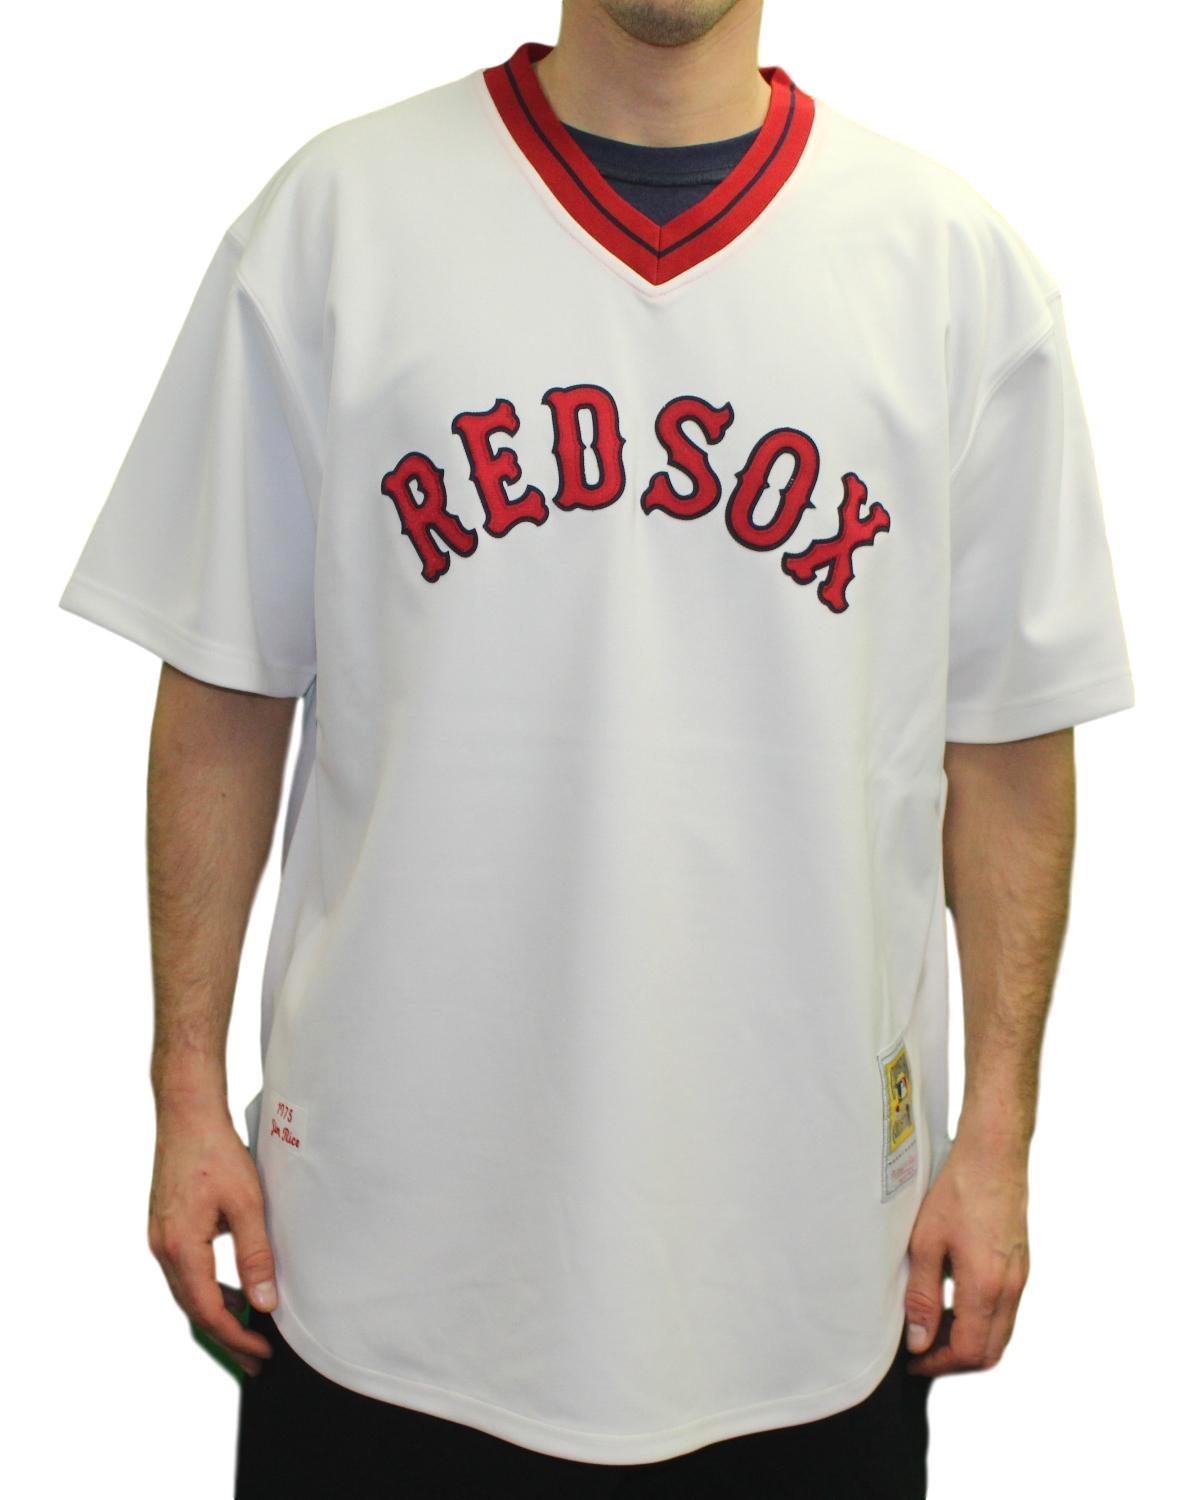 online retailer c2aaf d976d Details about Jim Rice Boston Red Sox Mitchell & Ness MLB Authentic 1975  Jersey - 2XL/52